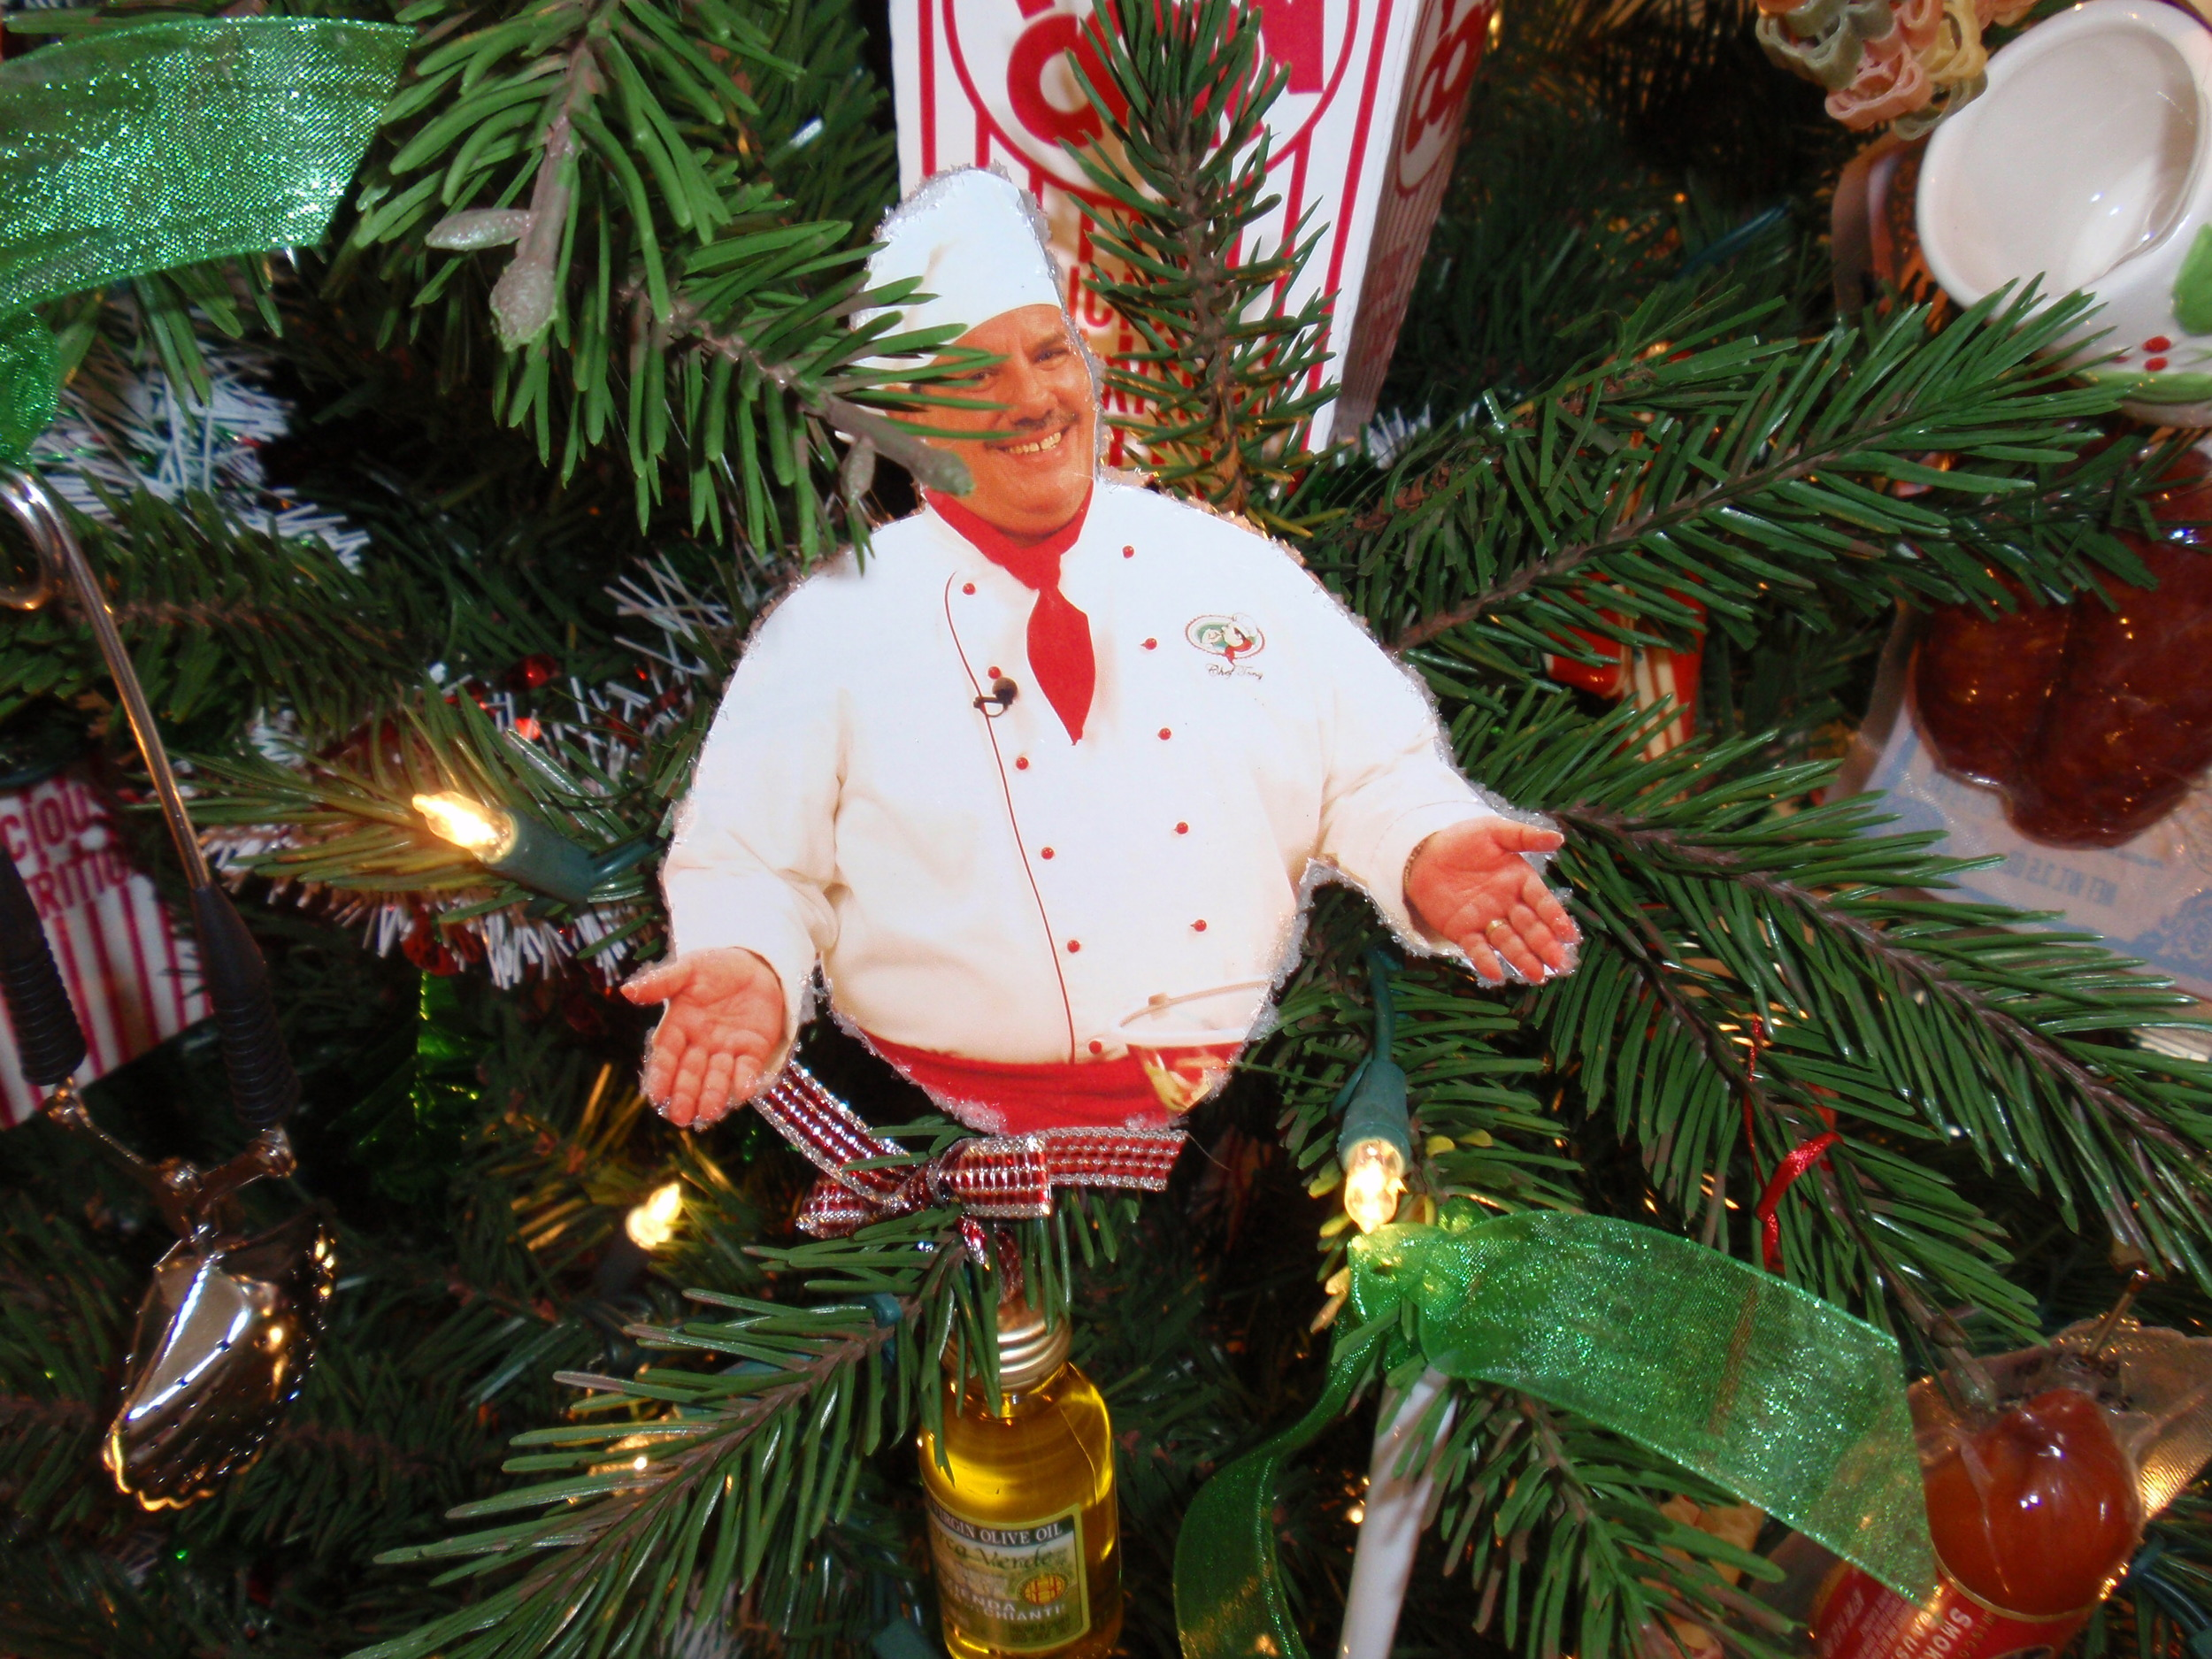 BESb Kitchen tree with all food ornaments, here is a homemade Chef Tony ornament.